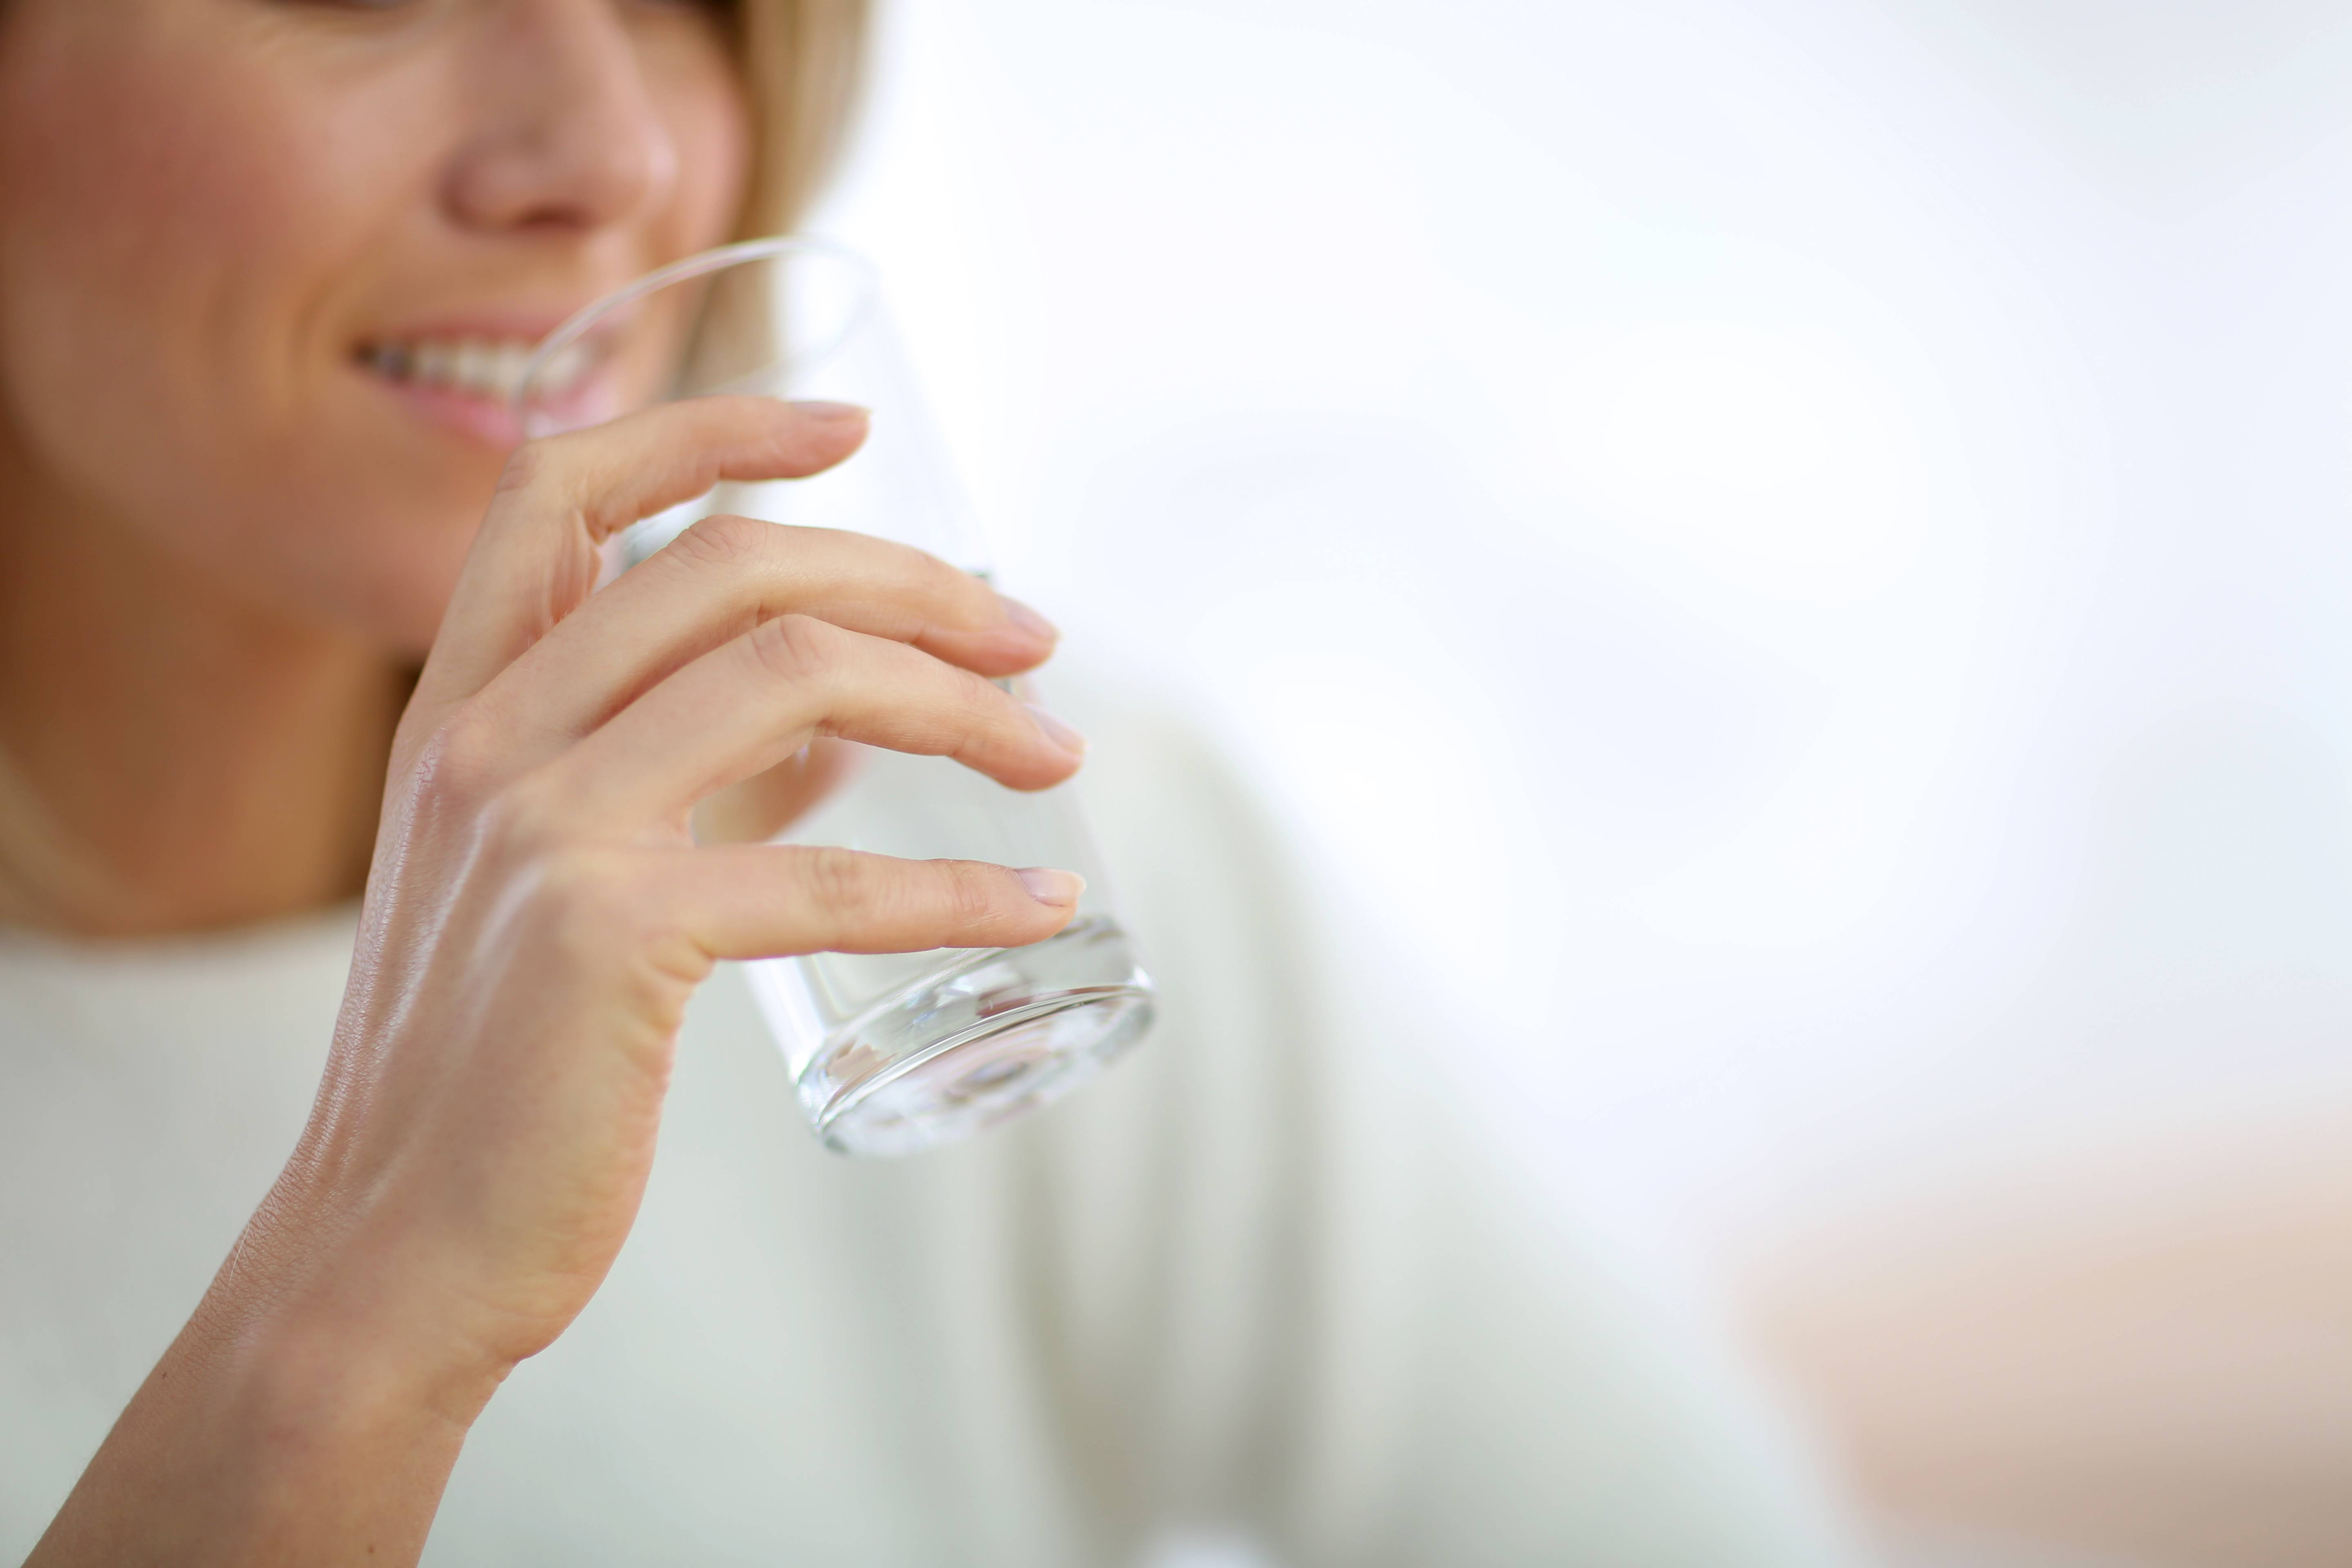 Closeup on glass of water held by woman's hand